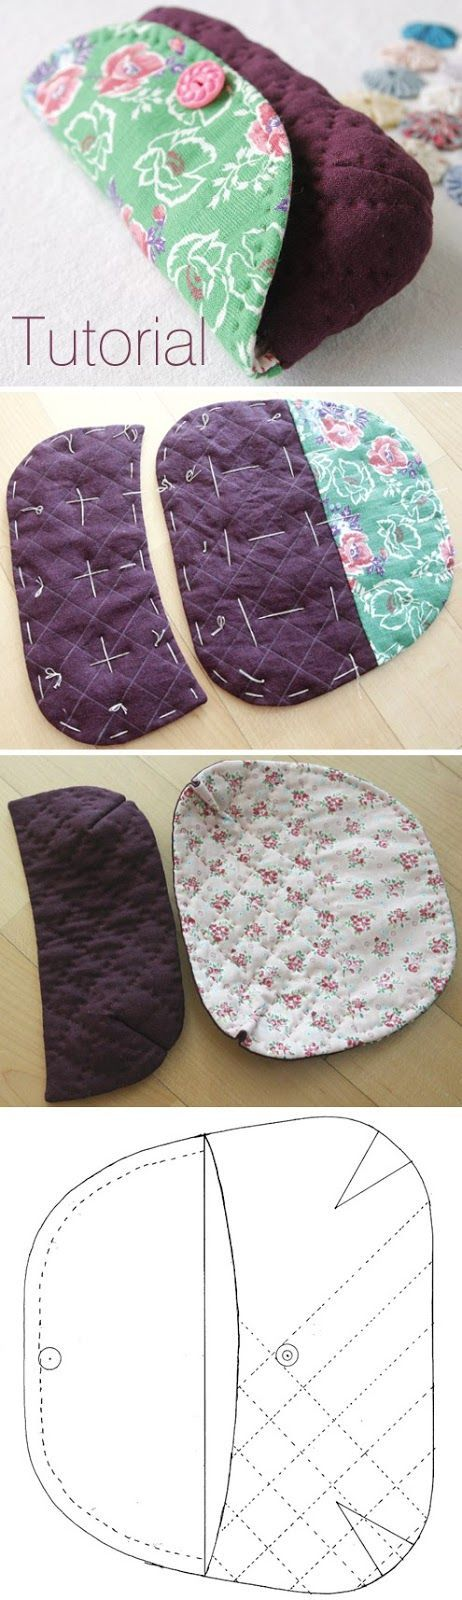 Glasses Case DIY Tutorial in Pictures. www.handmadiya.co...